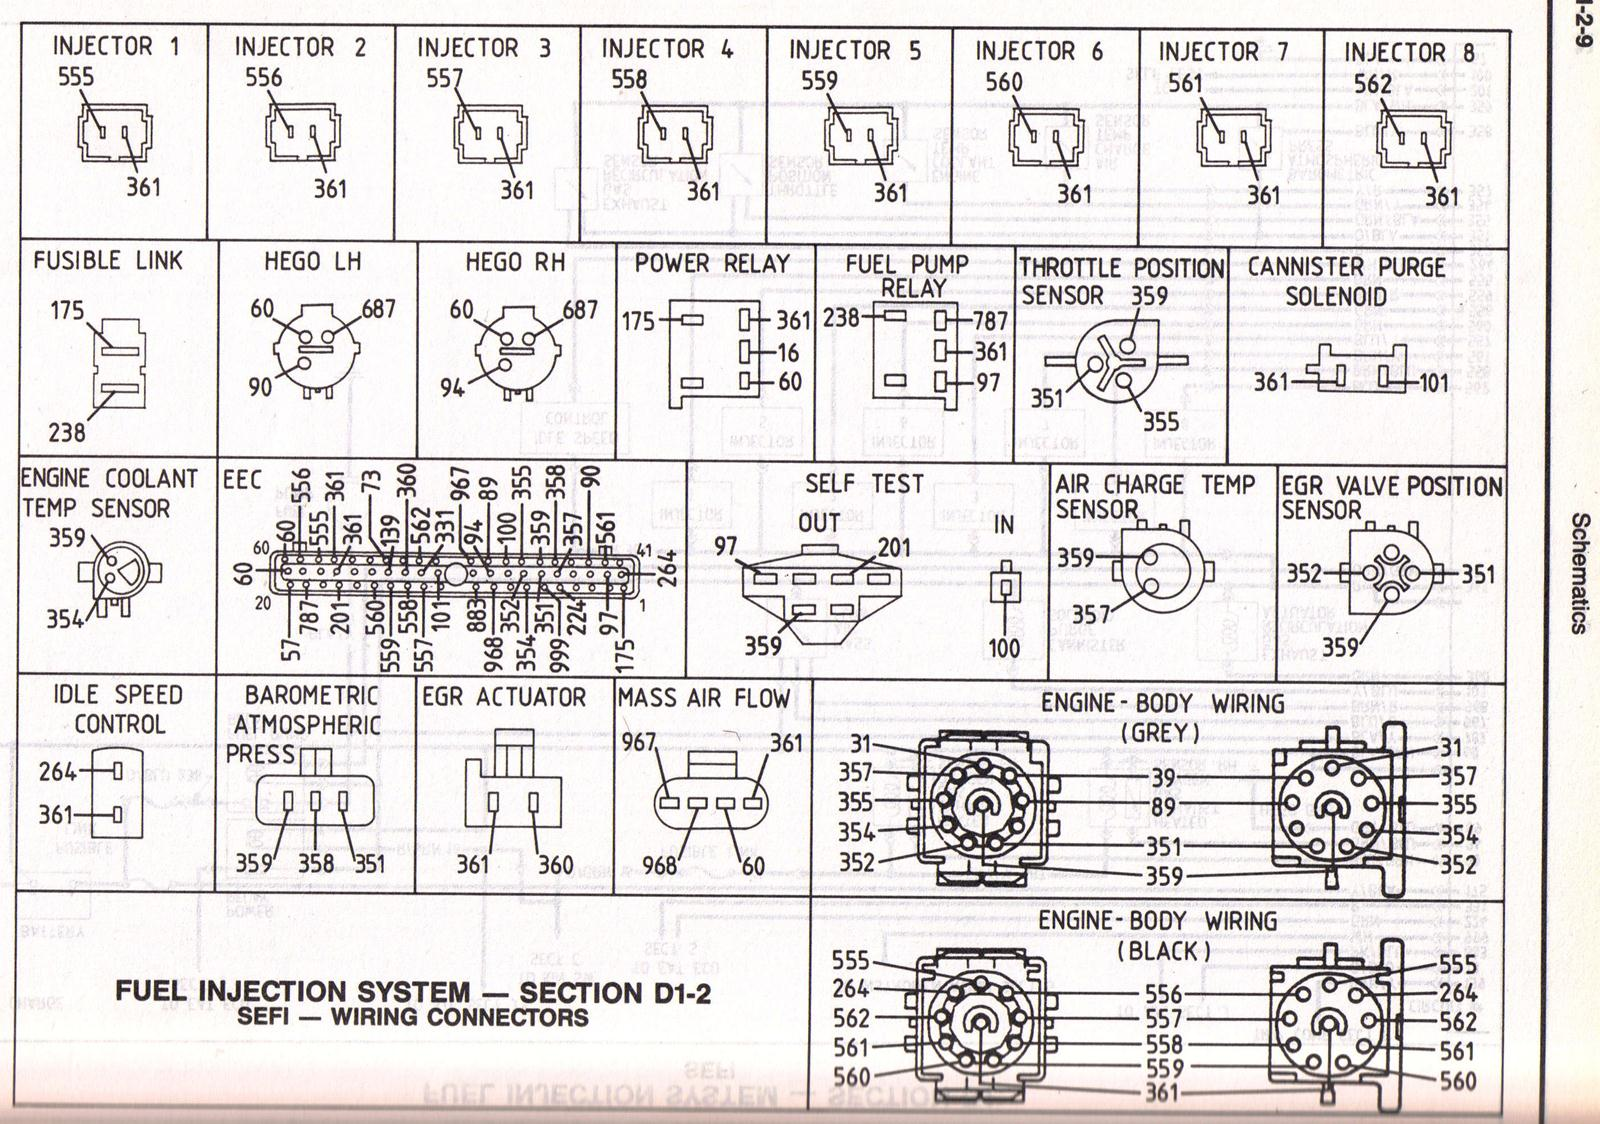 ecc4 2?resize\\=665%2C467 radio wiring diagram for 1989 ford f150 blodgett convection oven 1989 ford f250 radio wiring diagram at gsmx.co